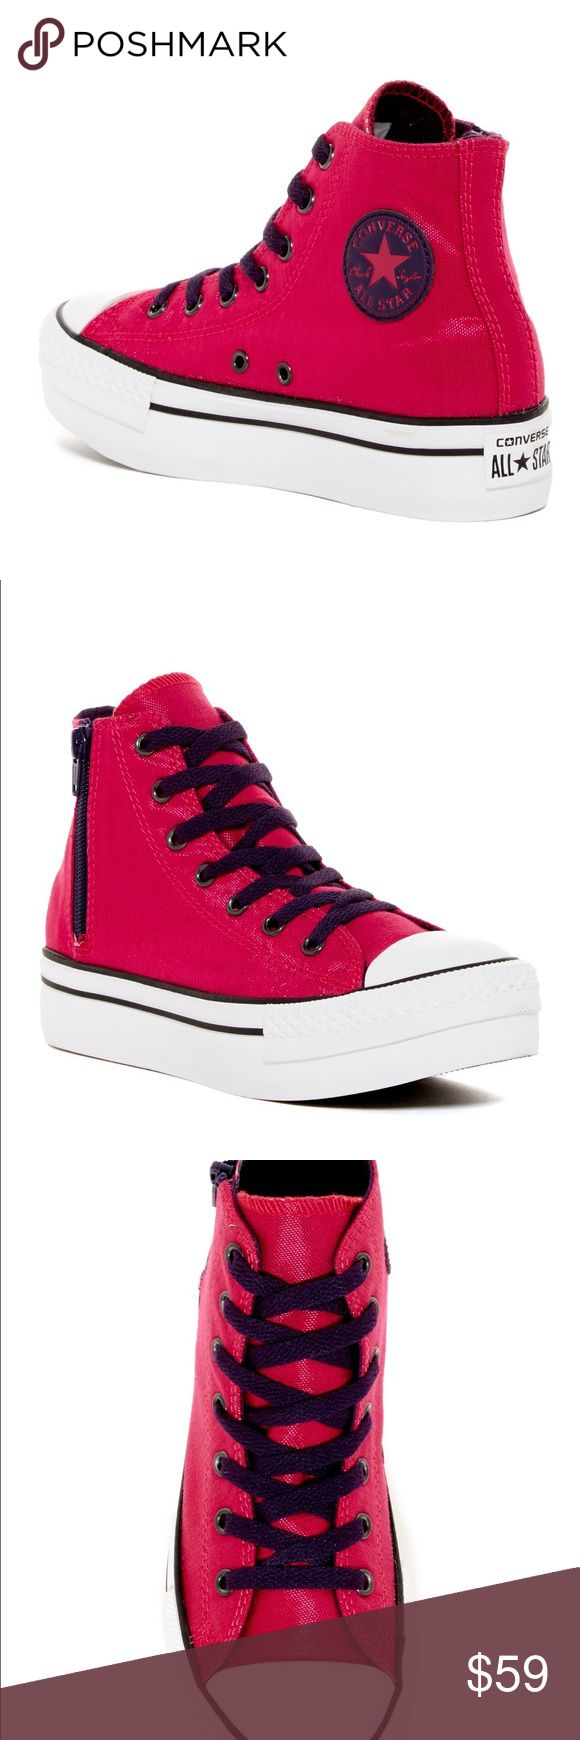 CONVERSE ZIP BERRY SIZE 7 WOMENS SHOES Shoes are a size 5 juniors which is a women's size 7. Brand new without box. Converse Shoes Sneakers